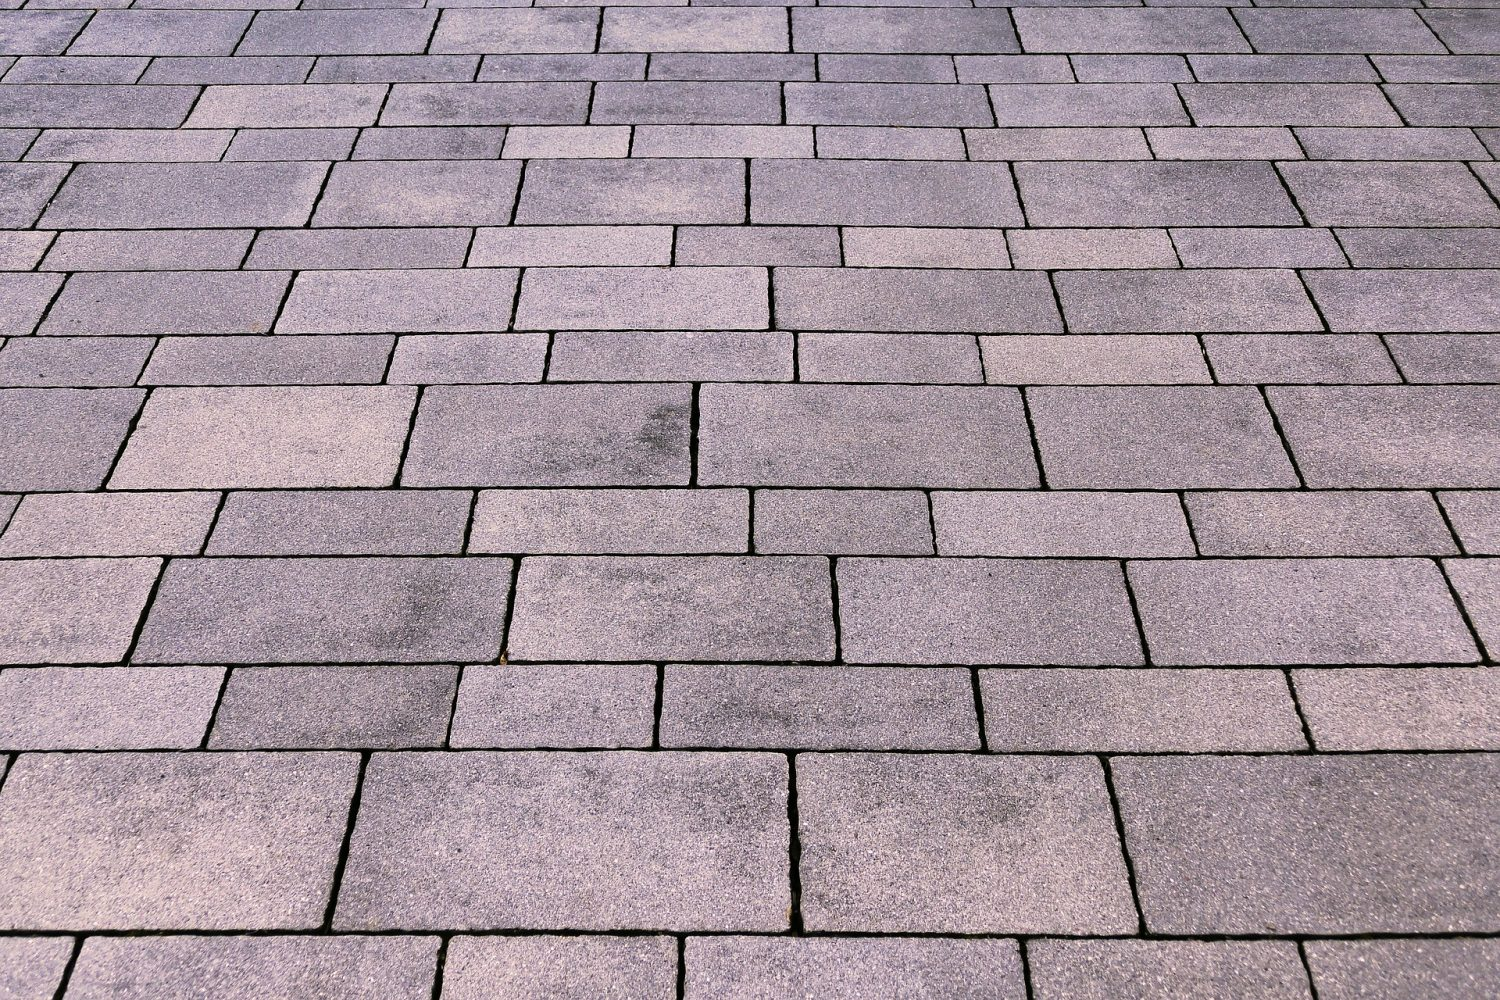 "A lot of people prefer utilizing paver stones to cover an outdoor area with a natural looking yet tough surface. The stones cover pathways, driveways, and porch areas. Furthermore, their little size makes them perfect for making curved edges and narrow borders. Most individuals hire someone to estimate the number of brick pavers that are required. But, the process is quite straightforward and you can do it as well. However, you must know the right size of the area to be covered along with the size of the brick pavers. Check out the below given points to estimate the brick pavers you will need. • Calculate The Total Project Area In Sq Ft: This estimation will help to determine the size of the area you wish to have paved. (length of the area in feet) x (width of the area in feet) = area in sq ft For instance: 5ft x 5ft = 25 sq ft On the off chance that the area where you want brick paves, has an irregular shape, then separate it into numerous segments. Calculate the region of every individual segment and add these together. • Deciding The Brick Paver Size: You may discover paver measurements are commonly listed as an ""estimation"". In order to determine the true size of the pavers, it is best to take your own measurements. Then to determine how many you will need, you will need to calculate the square footage of an individual paver. However, many pavers are marked in inches, not feet. *A square foot is equal to 144 square inches. (Length of brick paver in inches) x (Width of brick paver in inches) ÷ 144 = square footage per piece. For example: (7.7 in x 3.8 in) = 29.26 sq inches 29.26 q inches ÷ 144 square inches = 0.20 sq ft • Estimating How Many Pavers You Need: Now, you'll need to use the above two calculated values in order to decide what number of brick pavers your task requires. Once, you know the estimated number of brick paves you need, you are less likely to need to return to buy more pavers again and again. (area of the project in square feet) ÷ (square footage per piece) = estimated number of brick pavers. For example: The area you are paving is 25 sq ft and a single paver is 0.20 sq ft. 25sq ft ÷ 0.20 sq ft = 125 pavers *It is highly recommended to add 10 percent more brick pavers than you have estimated. The overabundance should account for breakage, pavers that you have to cut, and additional pavers to serve as replacements for any other repairs."